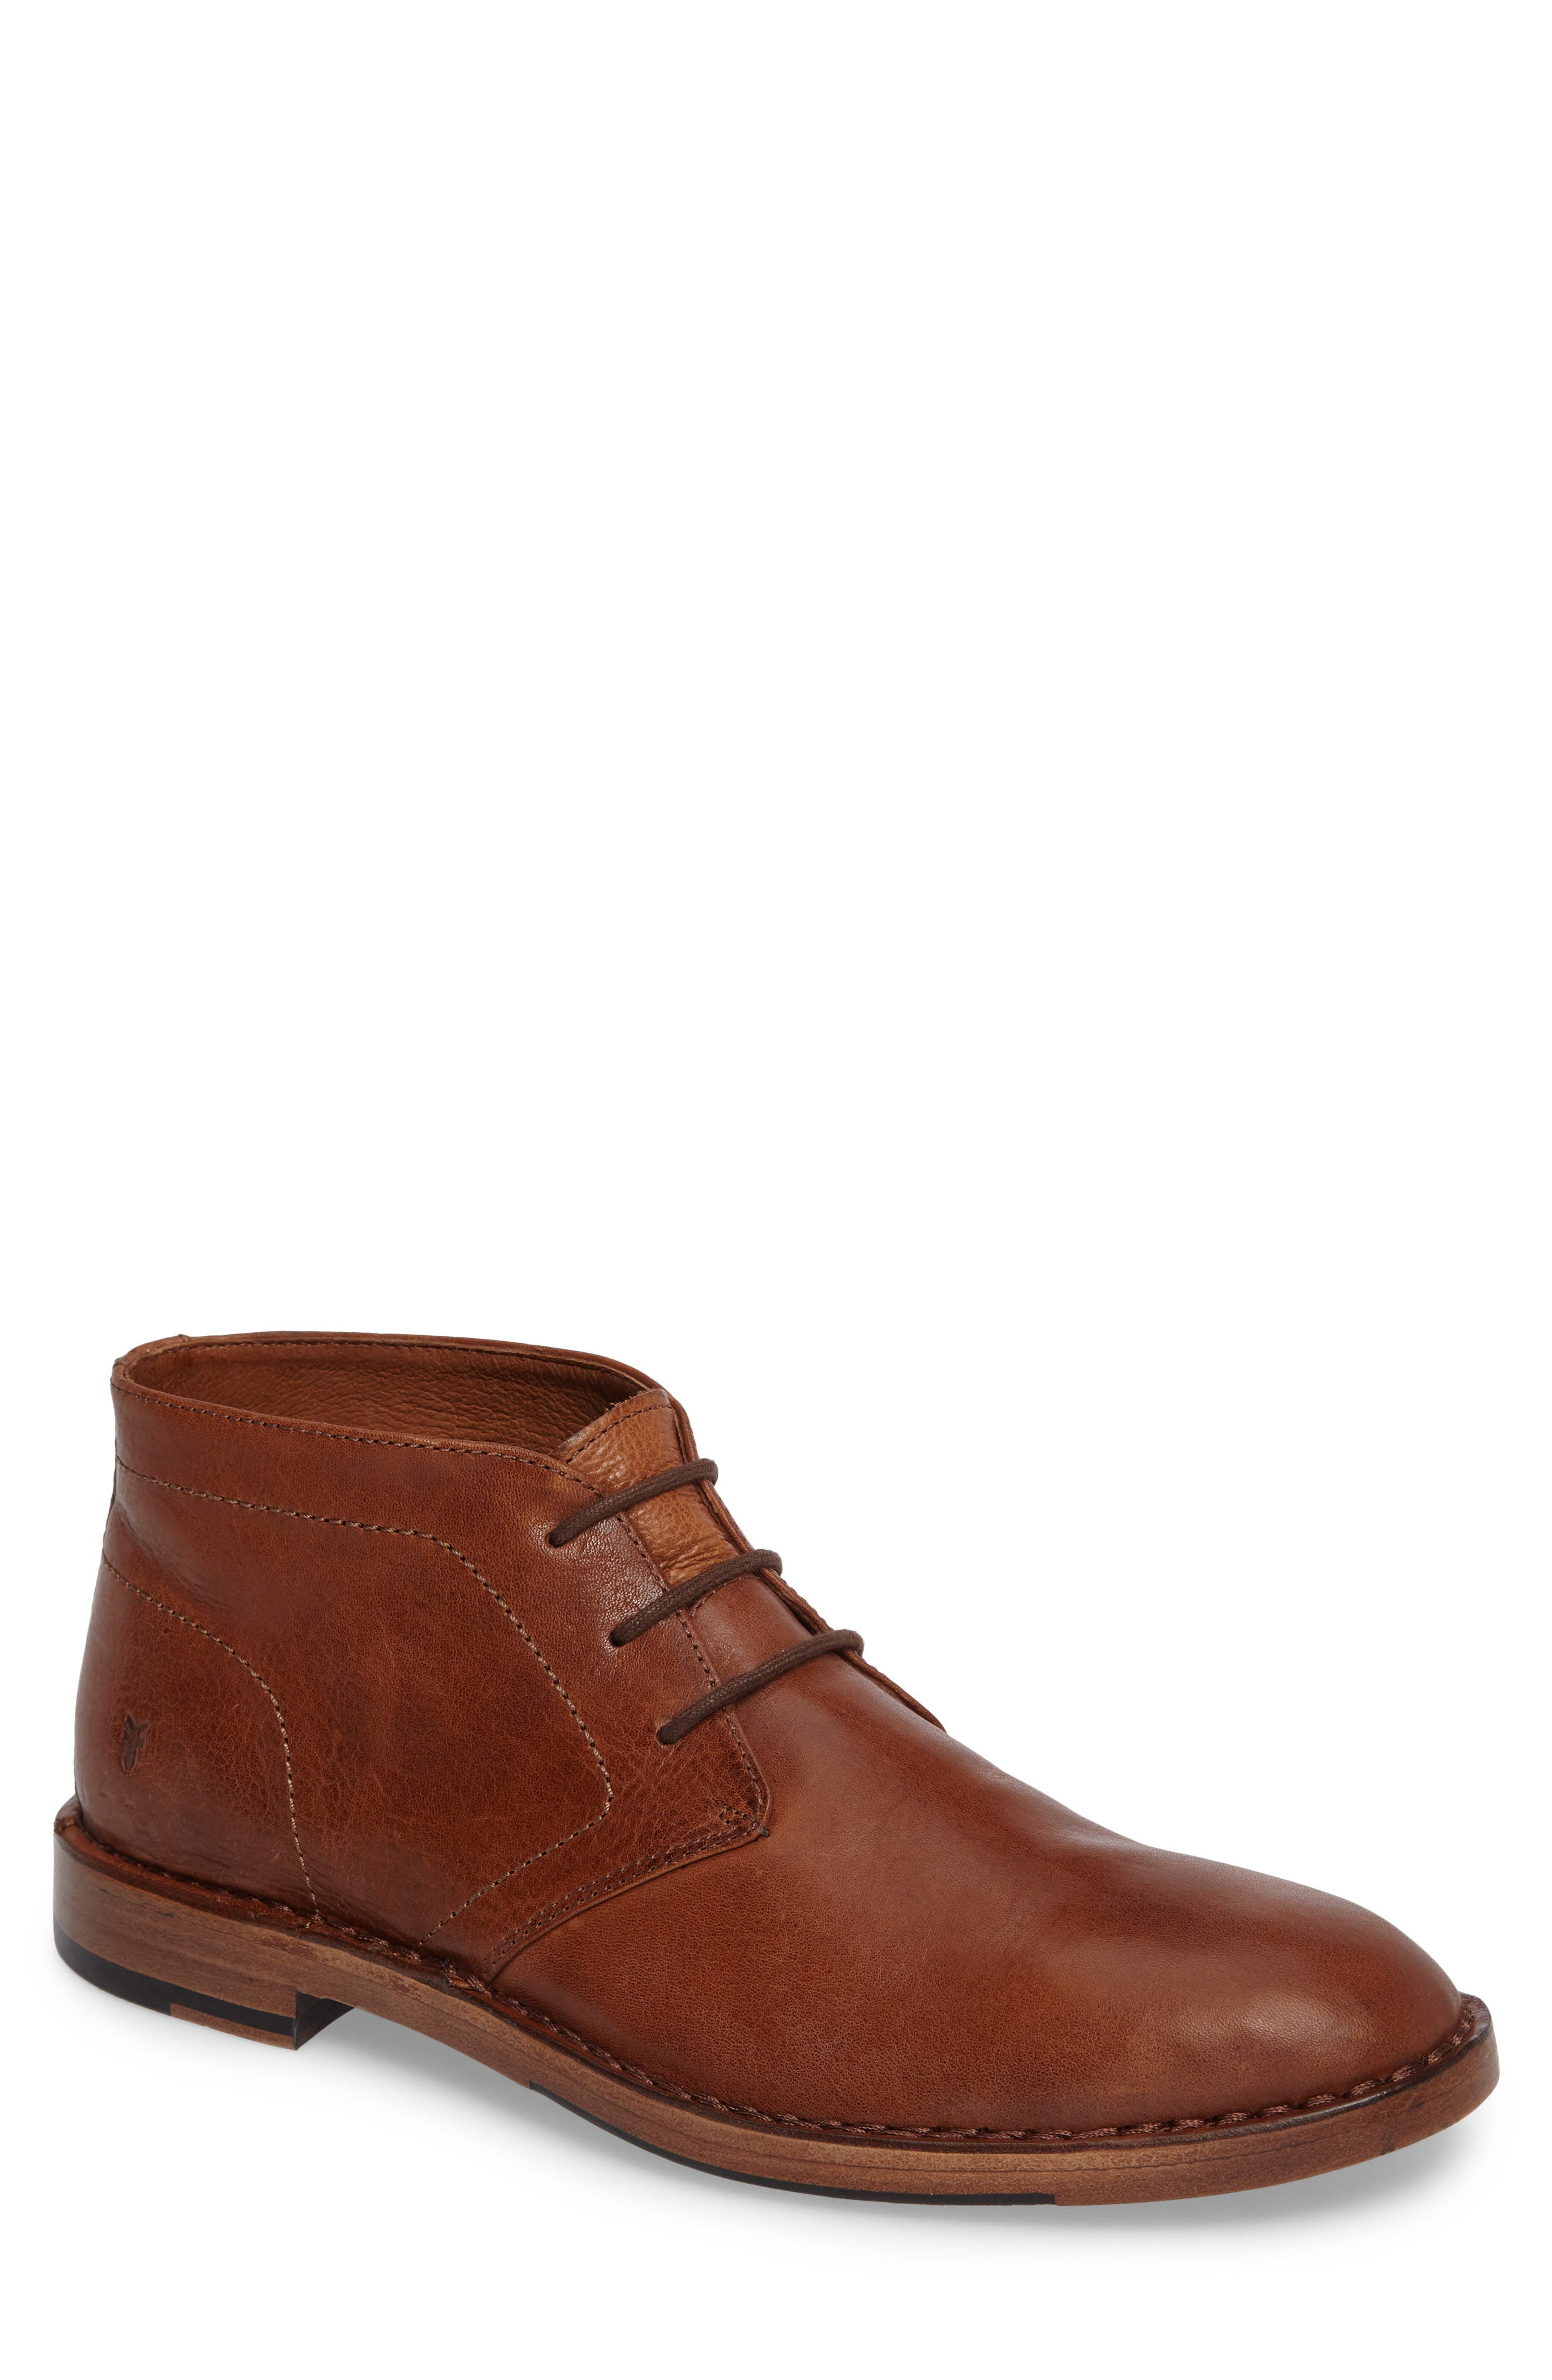 Mark Chukka Boot,                         Main,                         color, Copper Leather